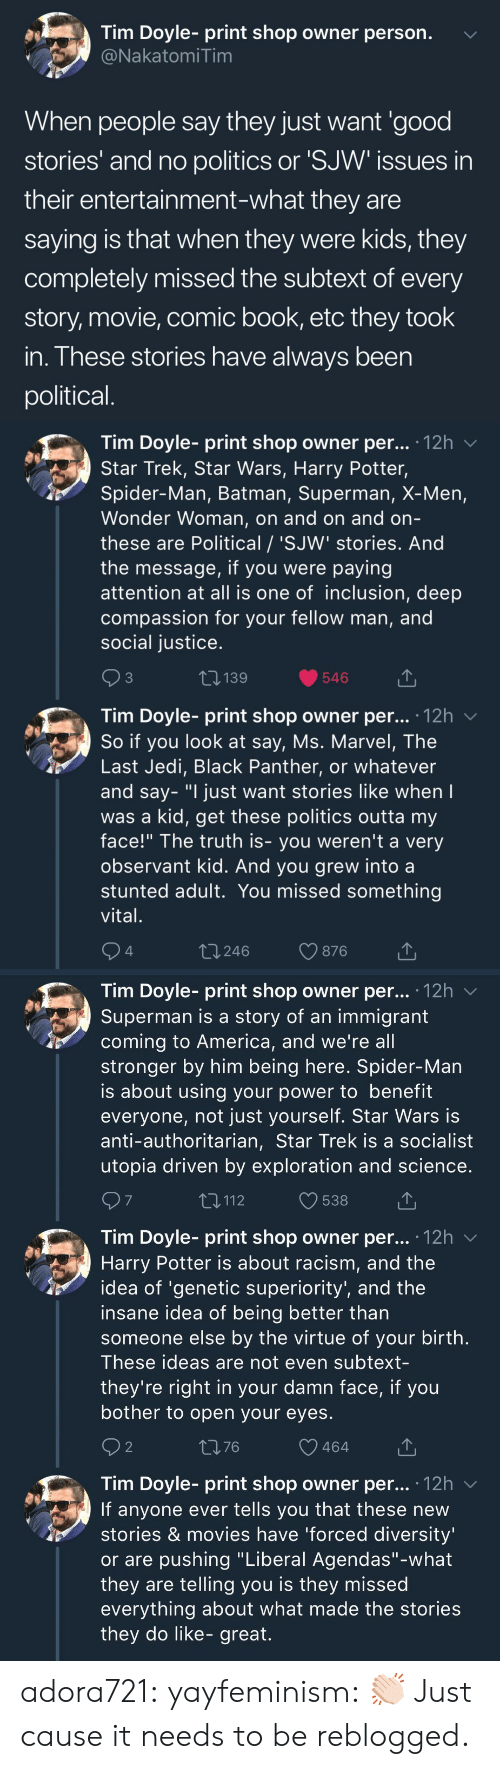 "America, Batman, and Harry Potter: Tim Doyle- print shop owner person.  NakatomiTim  When people say they just want 'good  stories' and no politics or 'SJW issues in  their entertainment-what they are  saying is that when they were kids, they  completely missed the subtext of every  story, movie, comic book, etc they took  in. These stories have always been  political   Tim Doyle- print shop owner per... 12h v  Star Trek, Star Wars, Harry Potter,  Spider-Man, Batman, Superman, X-Men,  Wonder Woman, on and on and orn  these are Political / 'SJW' stories. And  the message, if you were paying  attention at all is one of inclusion, deep  compassion for your fellow man, and  social justice  3  139  546  Tim Dovle-print shop owner per... 12h  So if you look at say, Ms. Marvel, The  Last Jedi, Black Panther, or whatever  and say- ""I just want stories like when  was a kid, get these politics outta my  face!"" The truth is- you weren't a very  observant kid. And you grew into a  stunted adult. You missed something  vital  4  t 246  876   Tim Doyle- print shop owner per... '12h v  Superman is a story of an immigrant  coming to America, and we're all  stronger by him being here. Spider-Man  is about using your power to benefit  everyone, not just yourself. Star Wars is  anti-authoritarian, Star Trek is a socialist  utopia driven by exploration and science  7  T,112  538  Tim Doyle- print shop owner per... .12h  Harry Potter is about racism, and the  idea of 'genetic superiority', and the  insane idea of being better than  someone else by the virtue of your birth  These ideas are not even subtext-  they're right in your damn face, if you  bother to open your eyes  2  1376  464  Tim Doyle- print shop owner per... 12h v  If anyone ever tells you that these new  stories & movies have 'forced diversity  or are pushing ""Liberal Agendas""-what  they are telling you is they missed  everything about what made the stories  they do like- great. adora721: yayfeminism: 👏🏻 Just cause it needs to be reblogged."